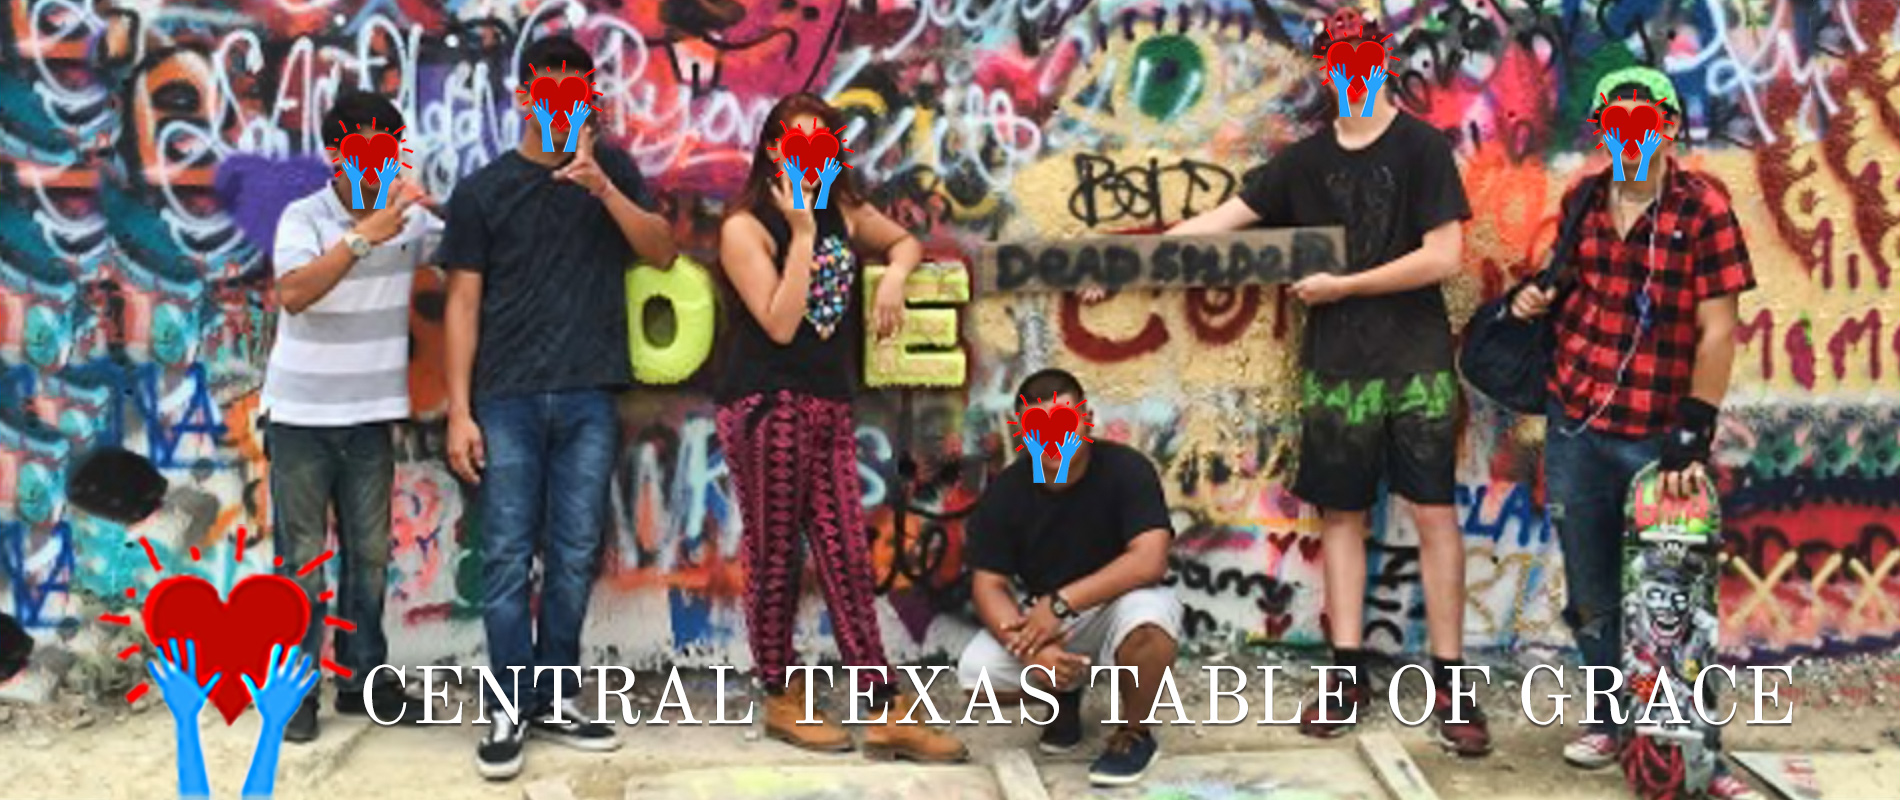 Central Texas Table of Grace